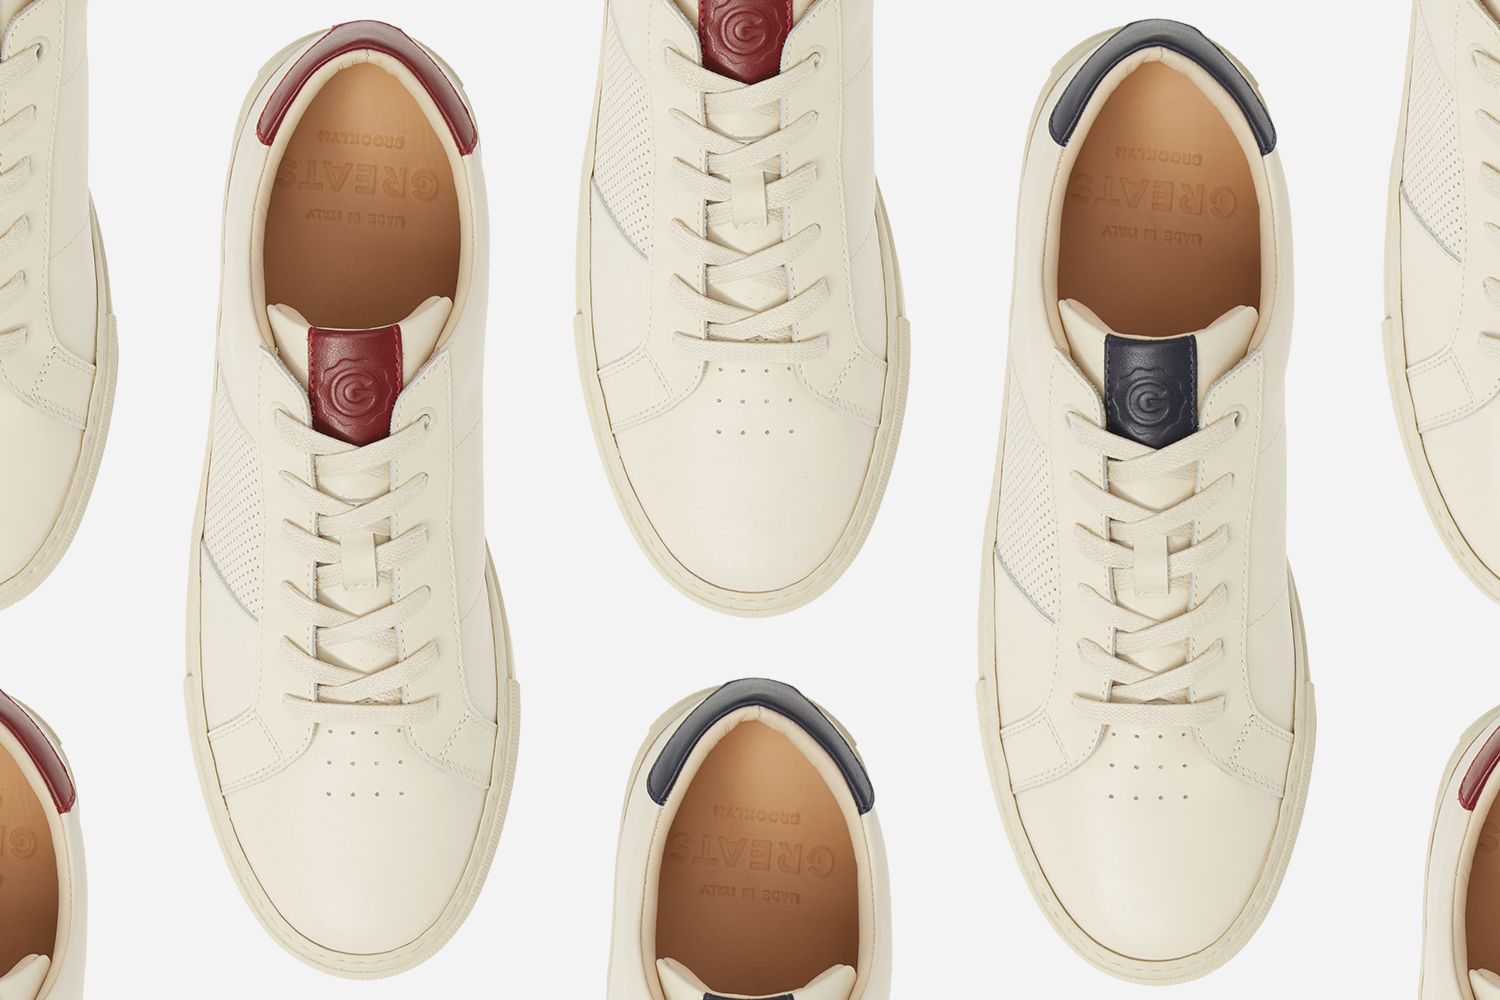 Greats' Italian Royale Sneakers Are 50